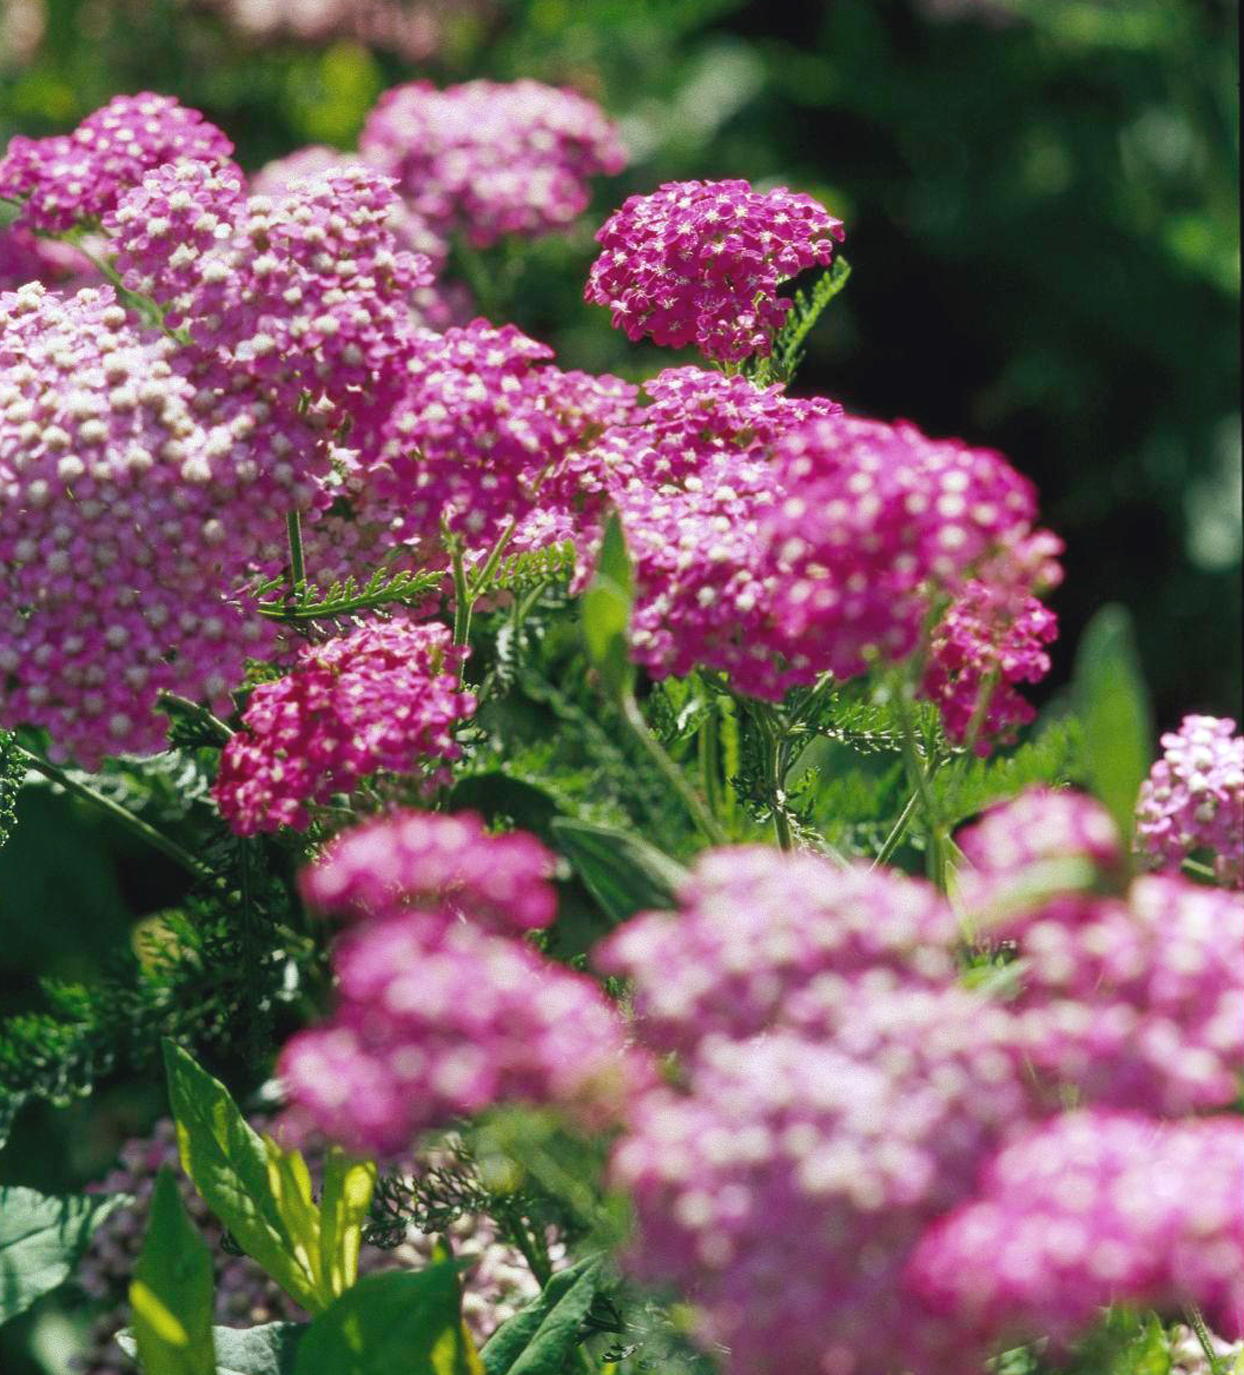 'Cerise Queen' yarrow